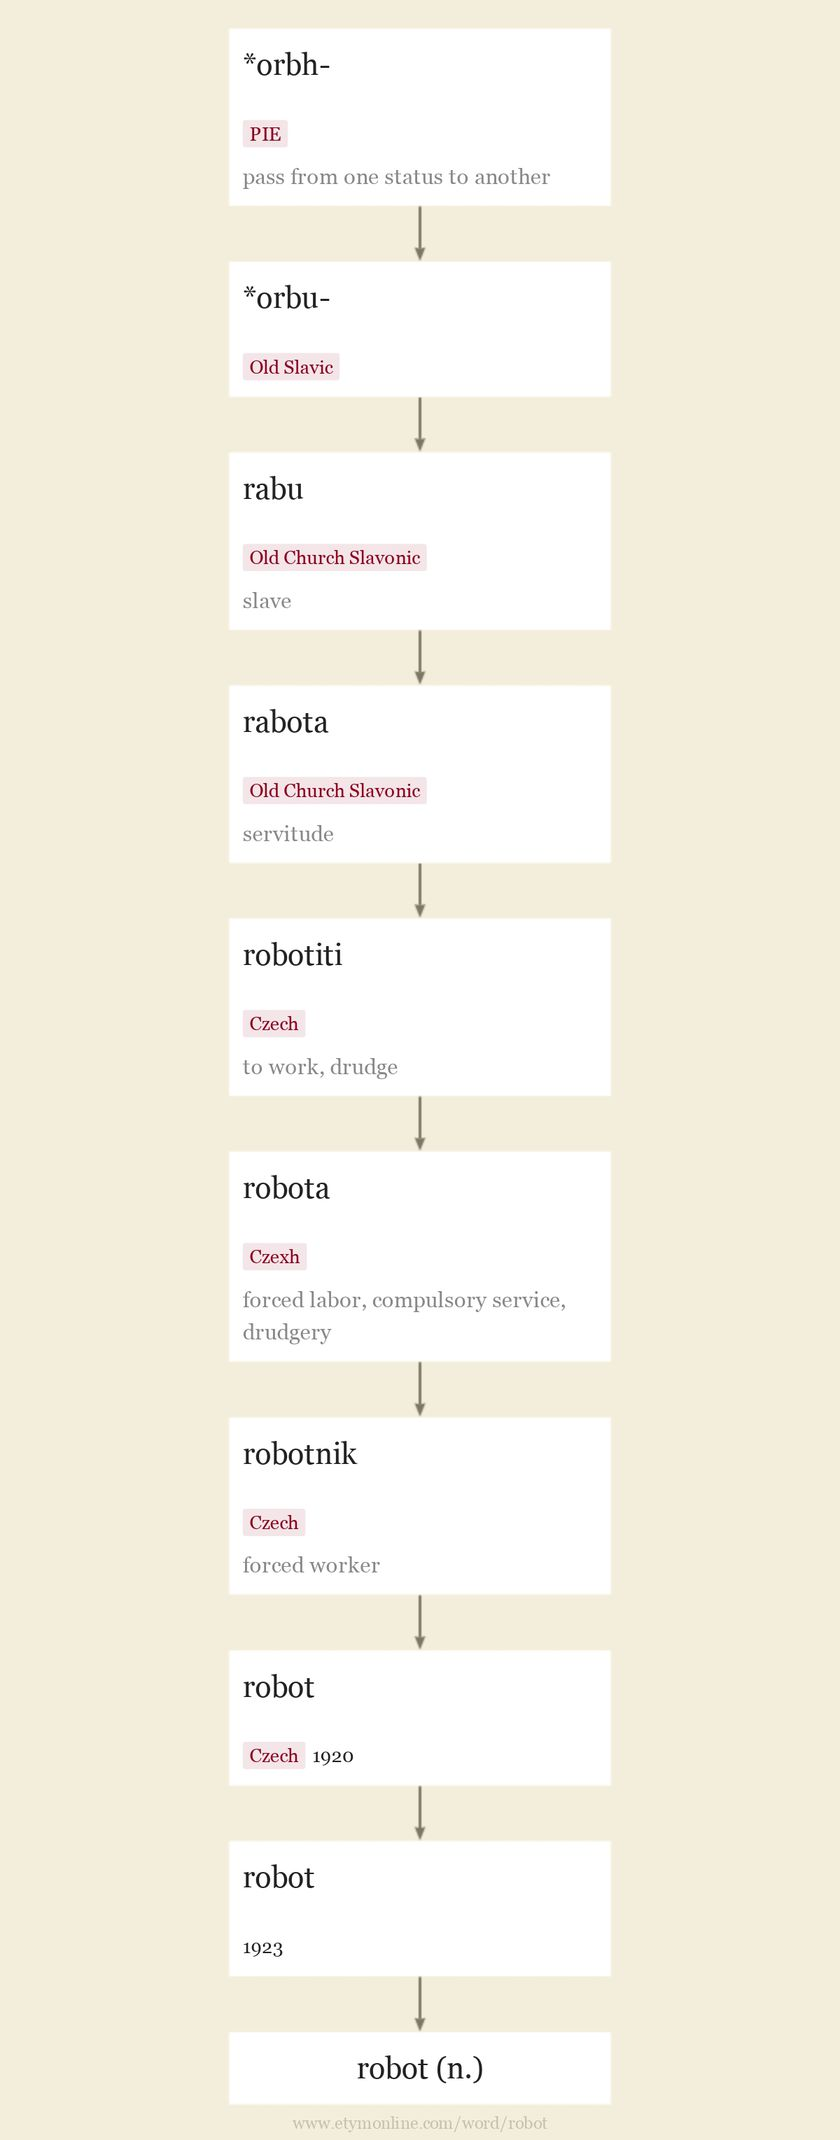 Origin and meaning of robot